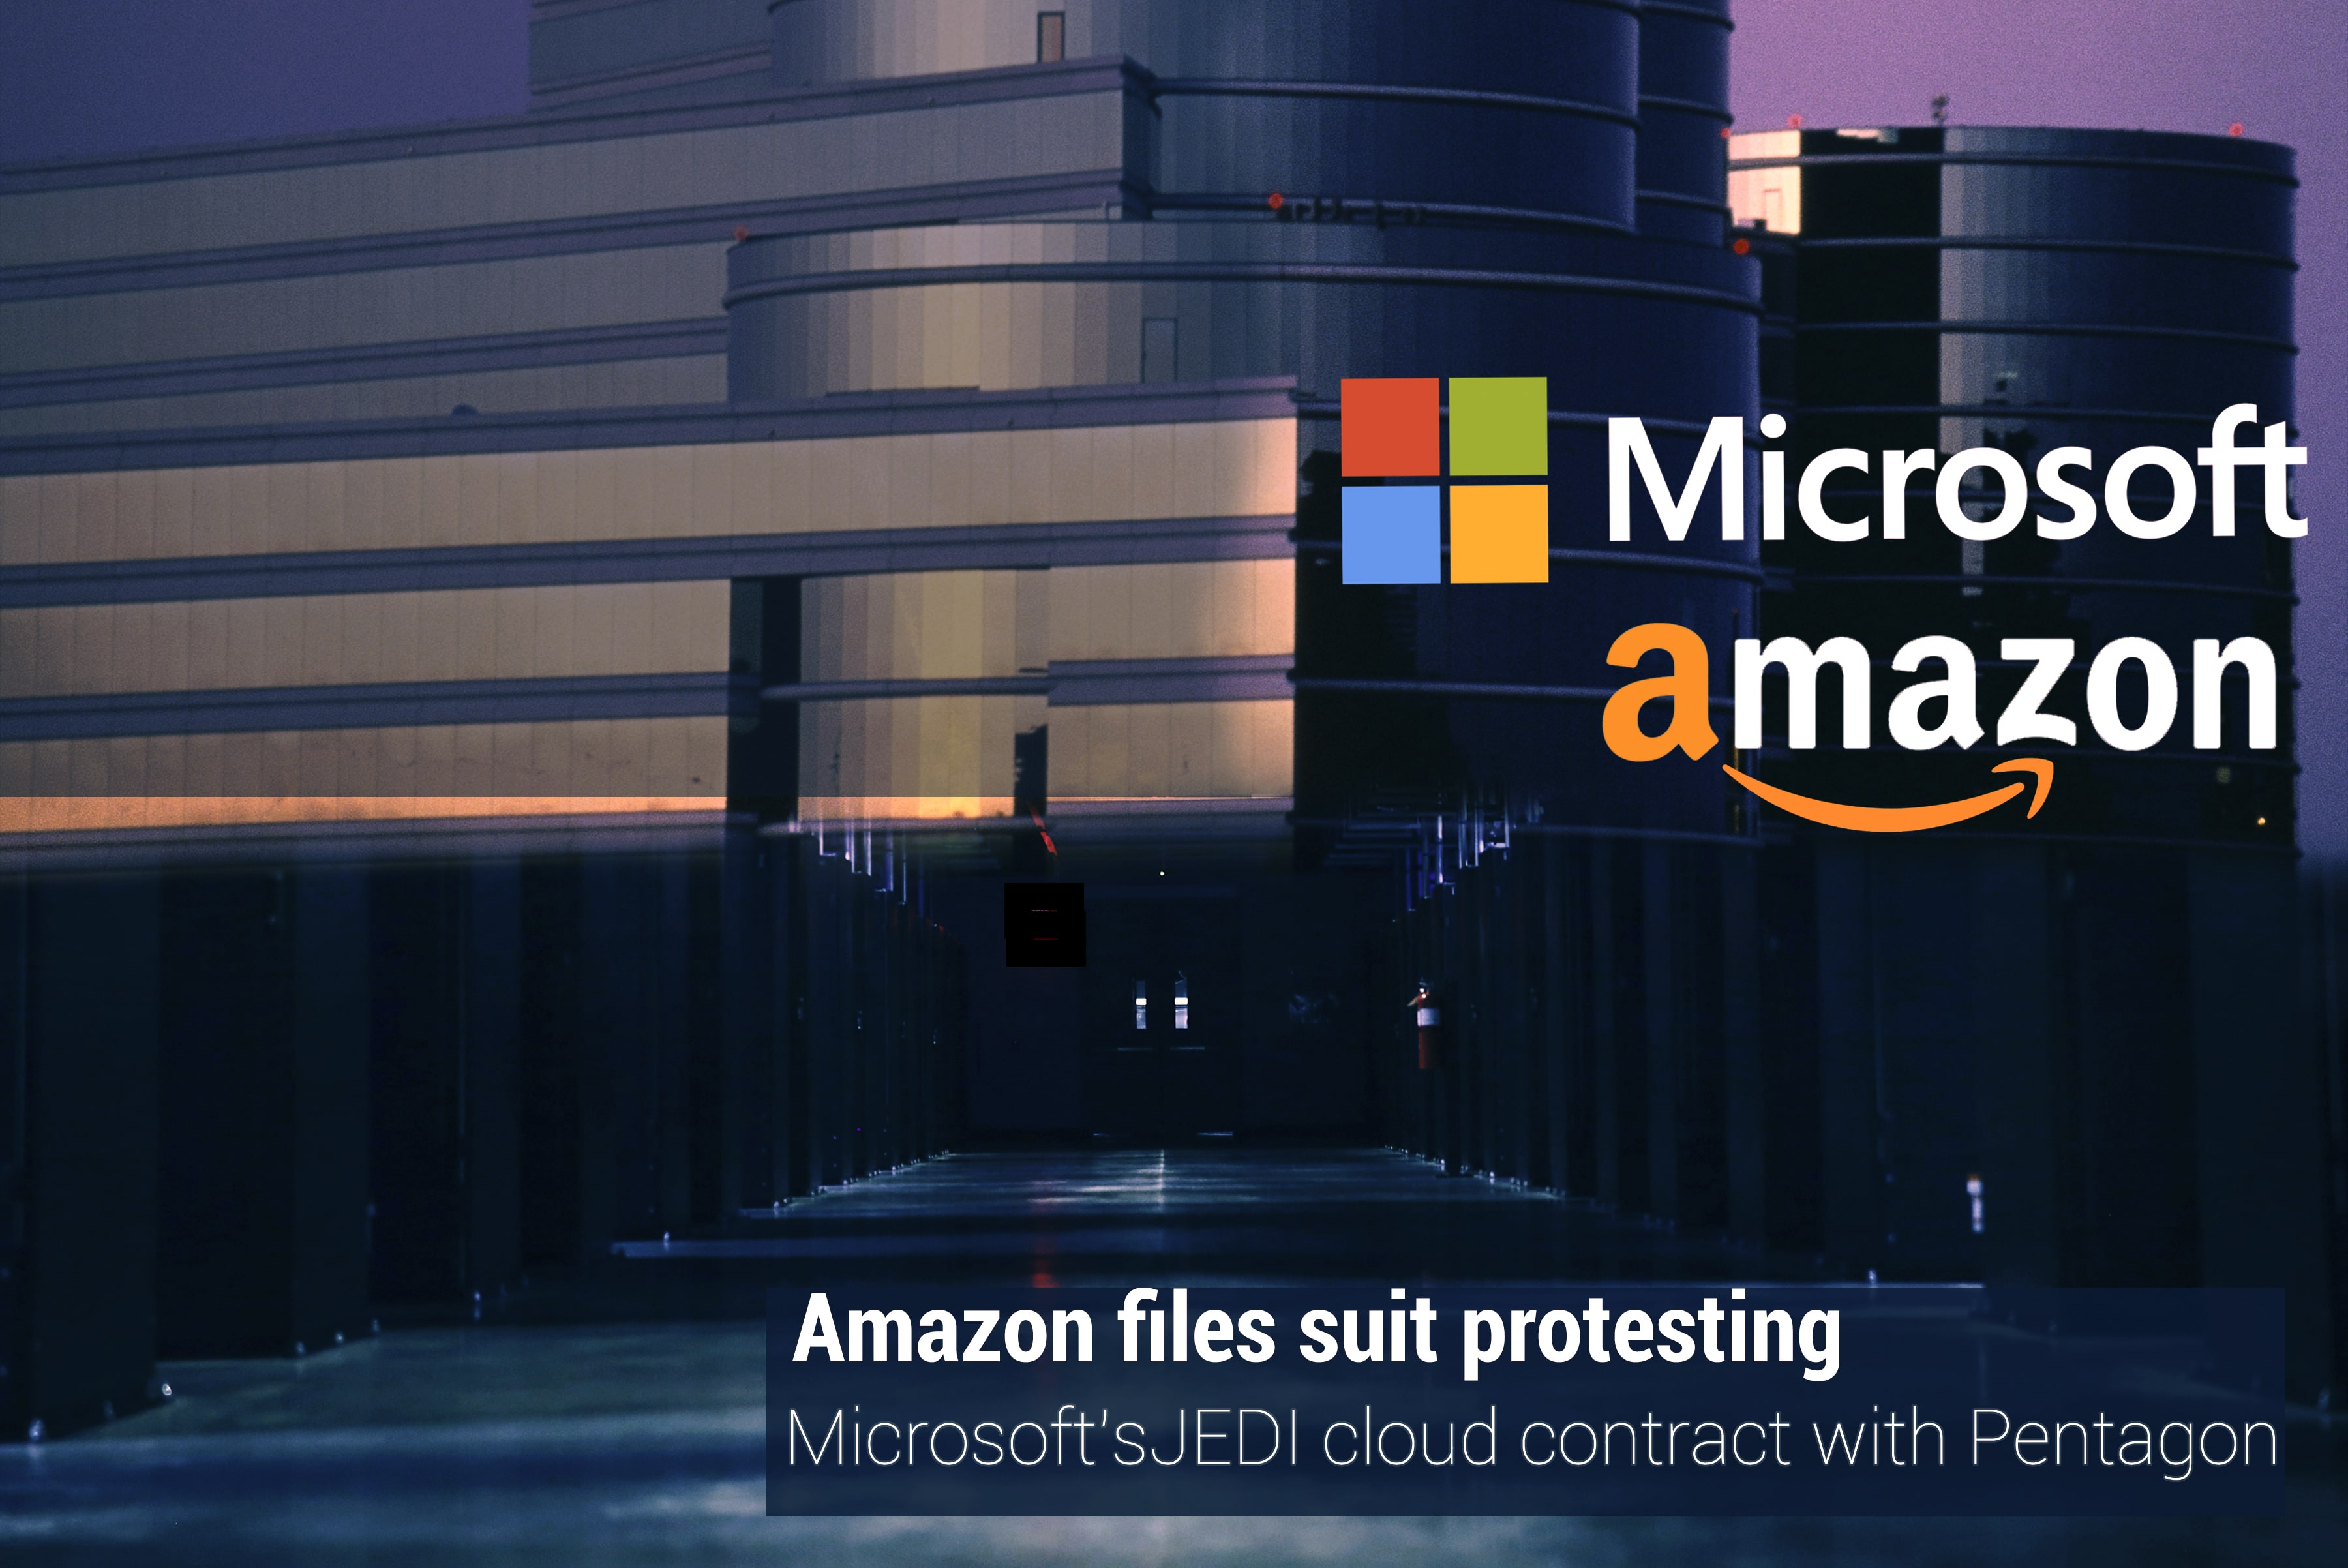 Amazon files lawsuit over JEDI cloud Contract of Microsoft with Pentagon